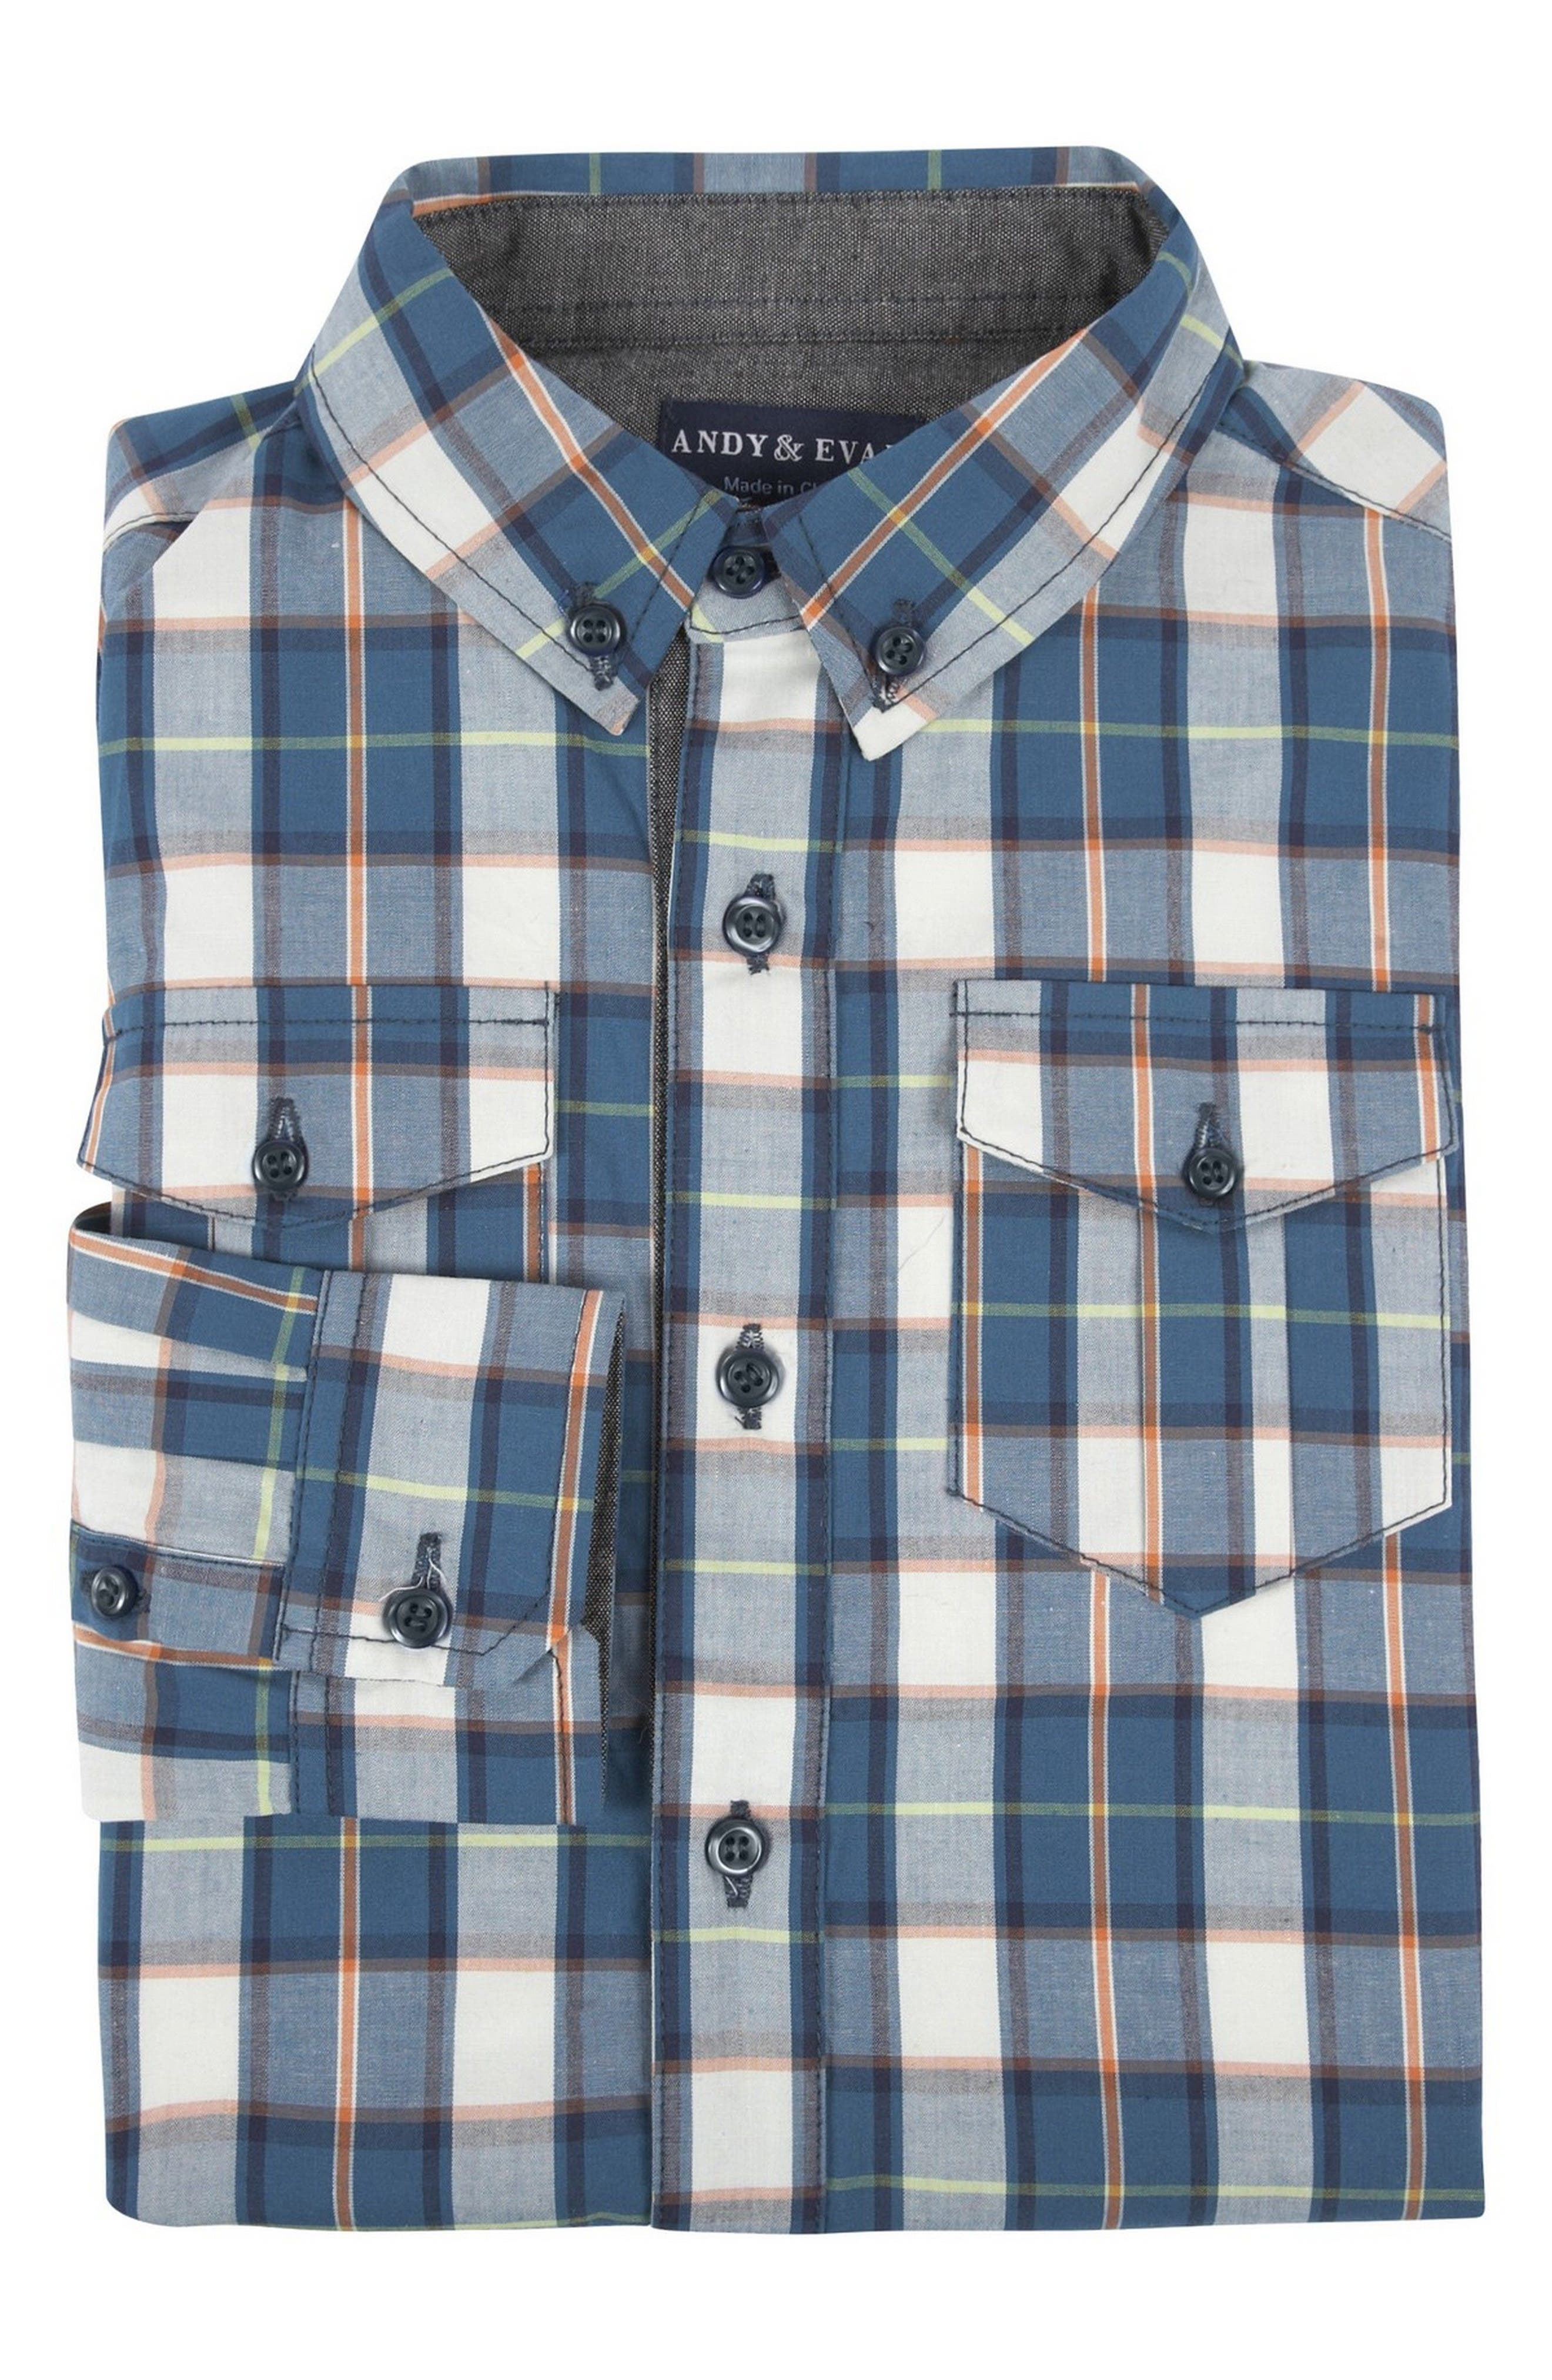 Alternate Image 1 Selected - Andy & Evan Plaid Shirtzie Bodysuit (Baby Boys)